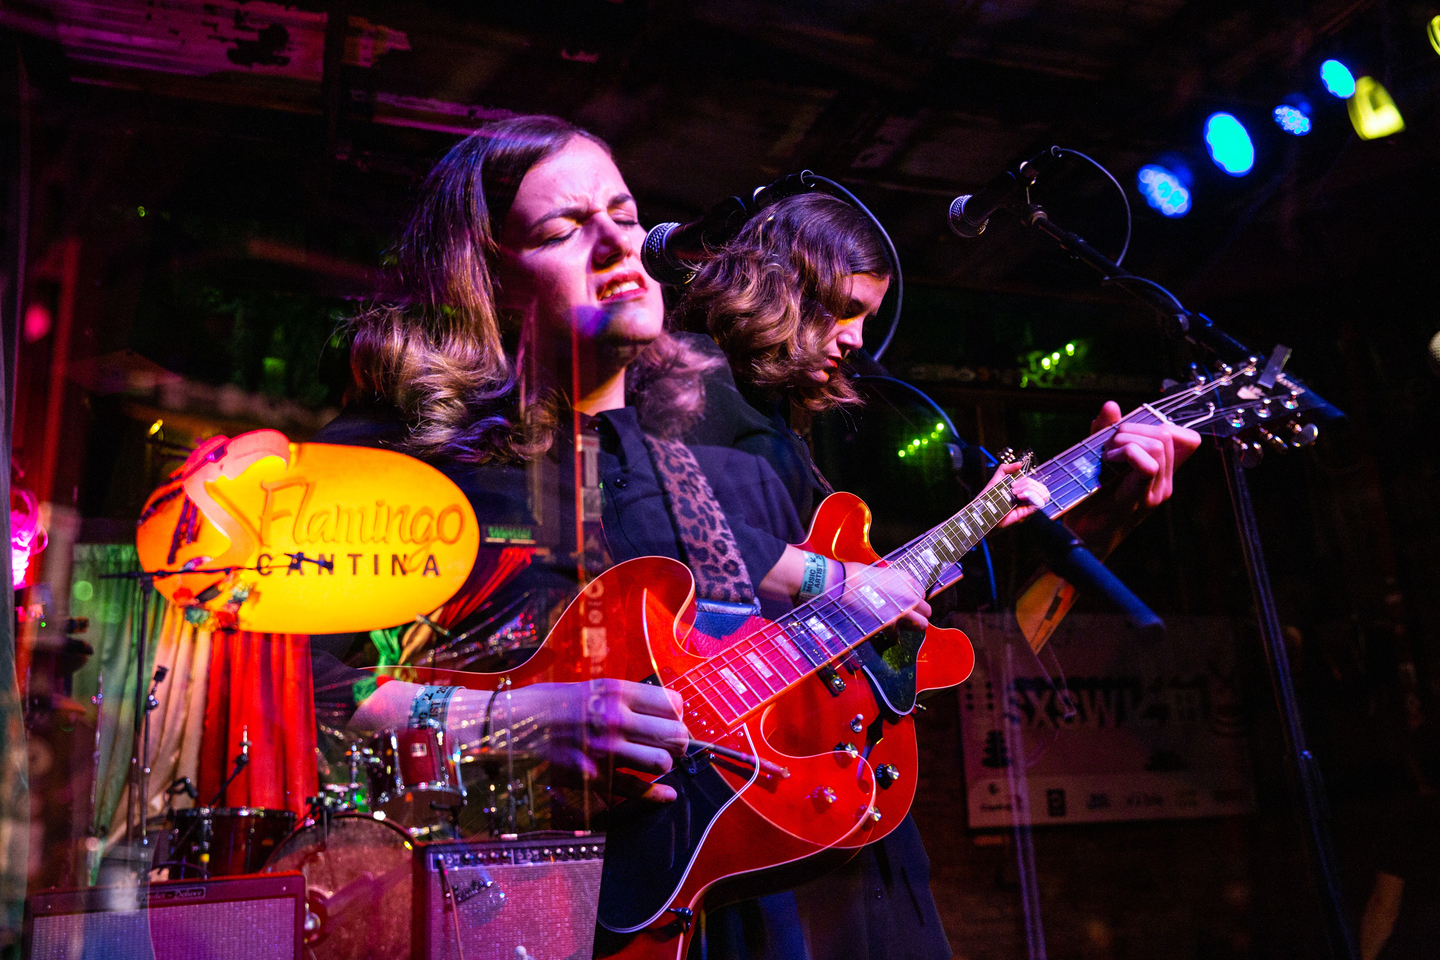 Fer Casillas at Flamingo Cantina, presented by Sounds from Mexico – Photo by KArla Bruciaga